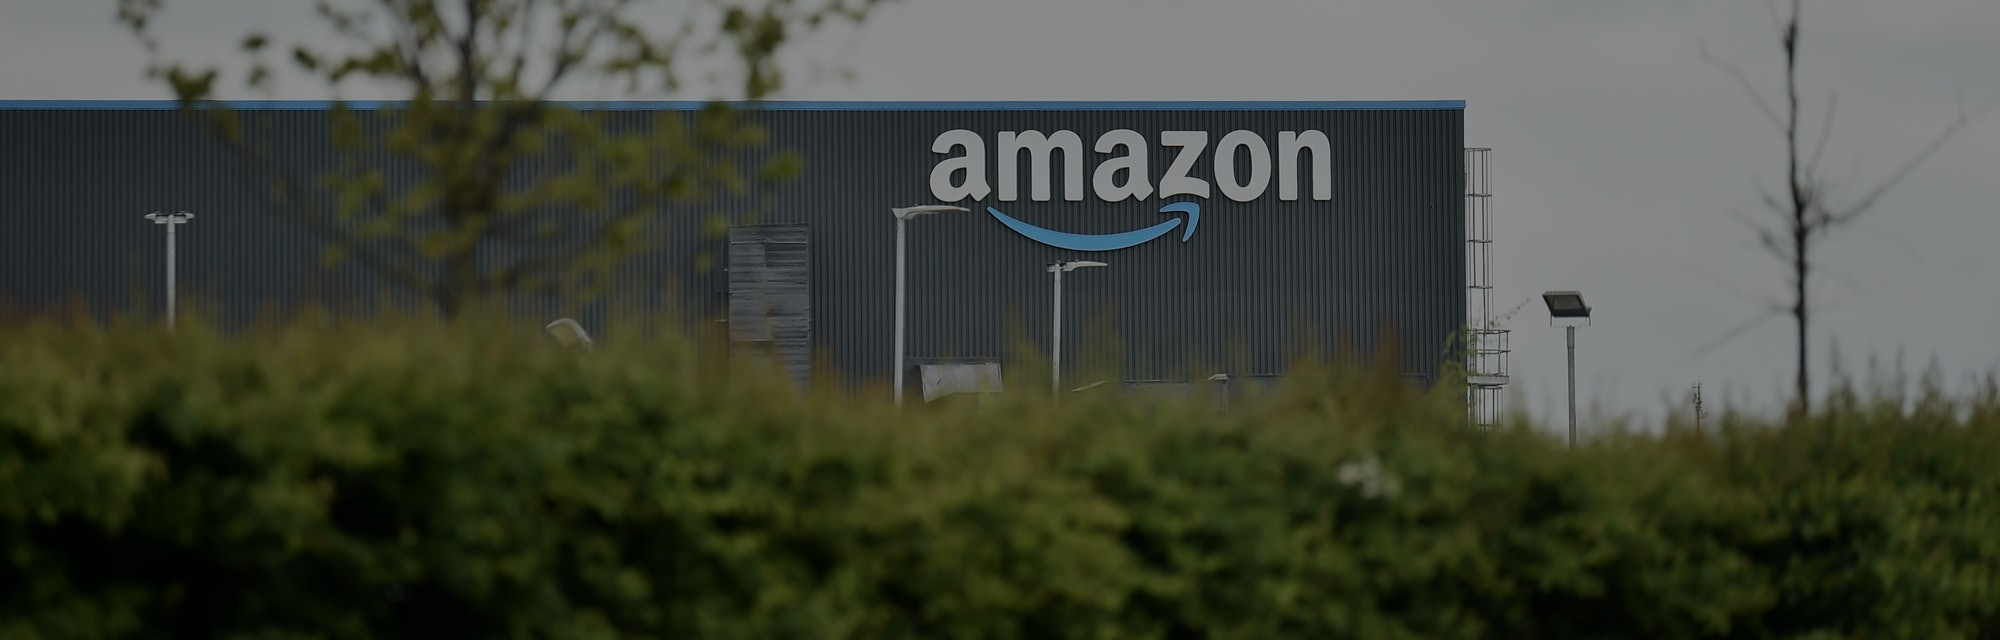 LEEDS, ENGLAND - MAY 27: A general view outside an Amazon UK Services Ltd Warehouse at Leeds Distrib...